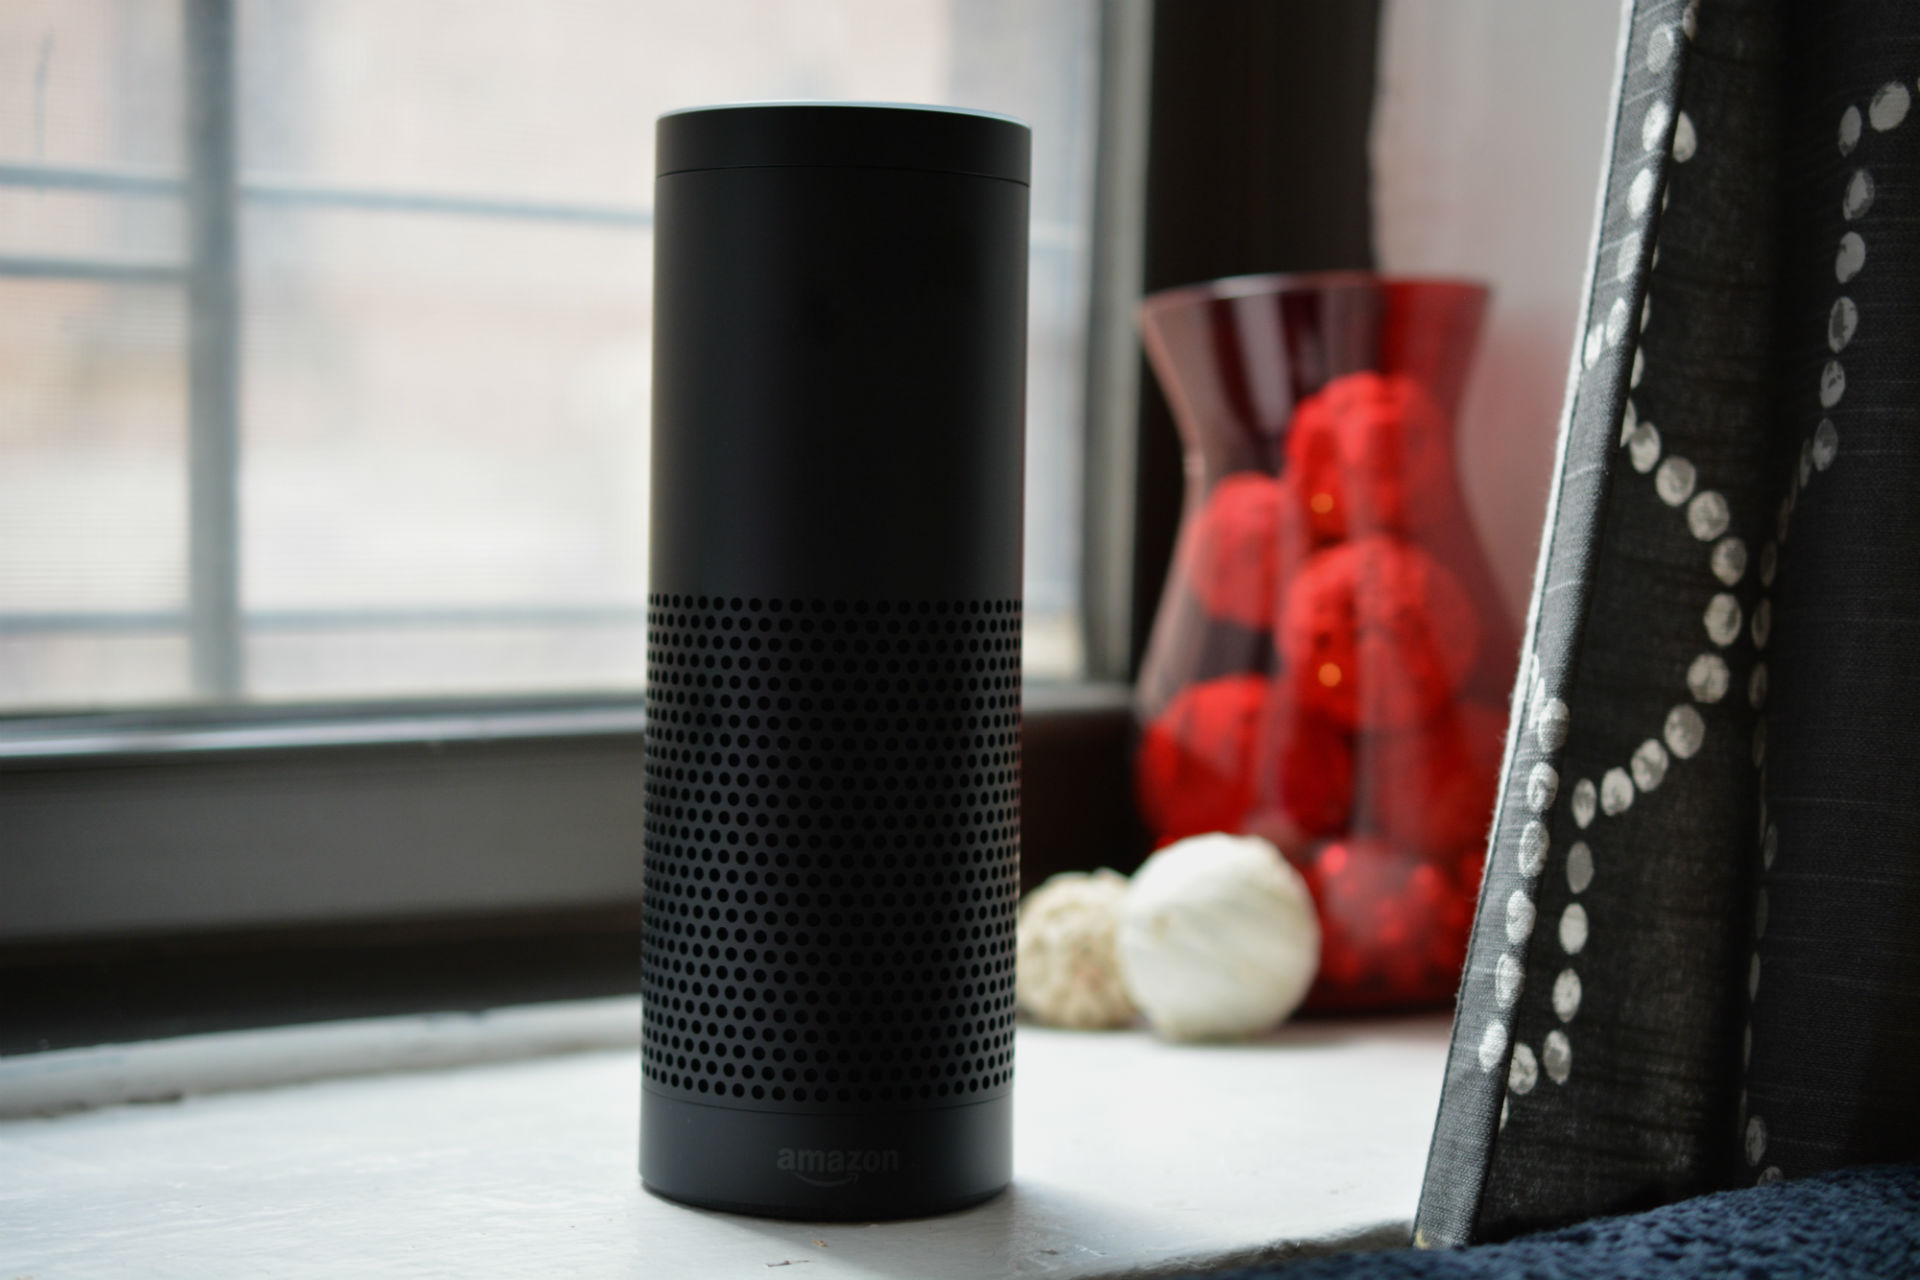 Apple could introduce its own Amazon Echo competitor at WWDC.